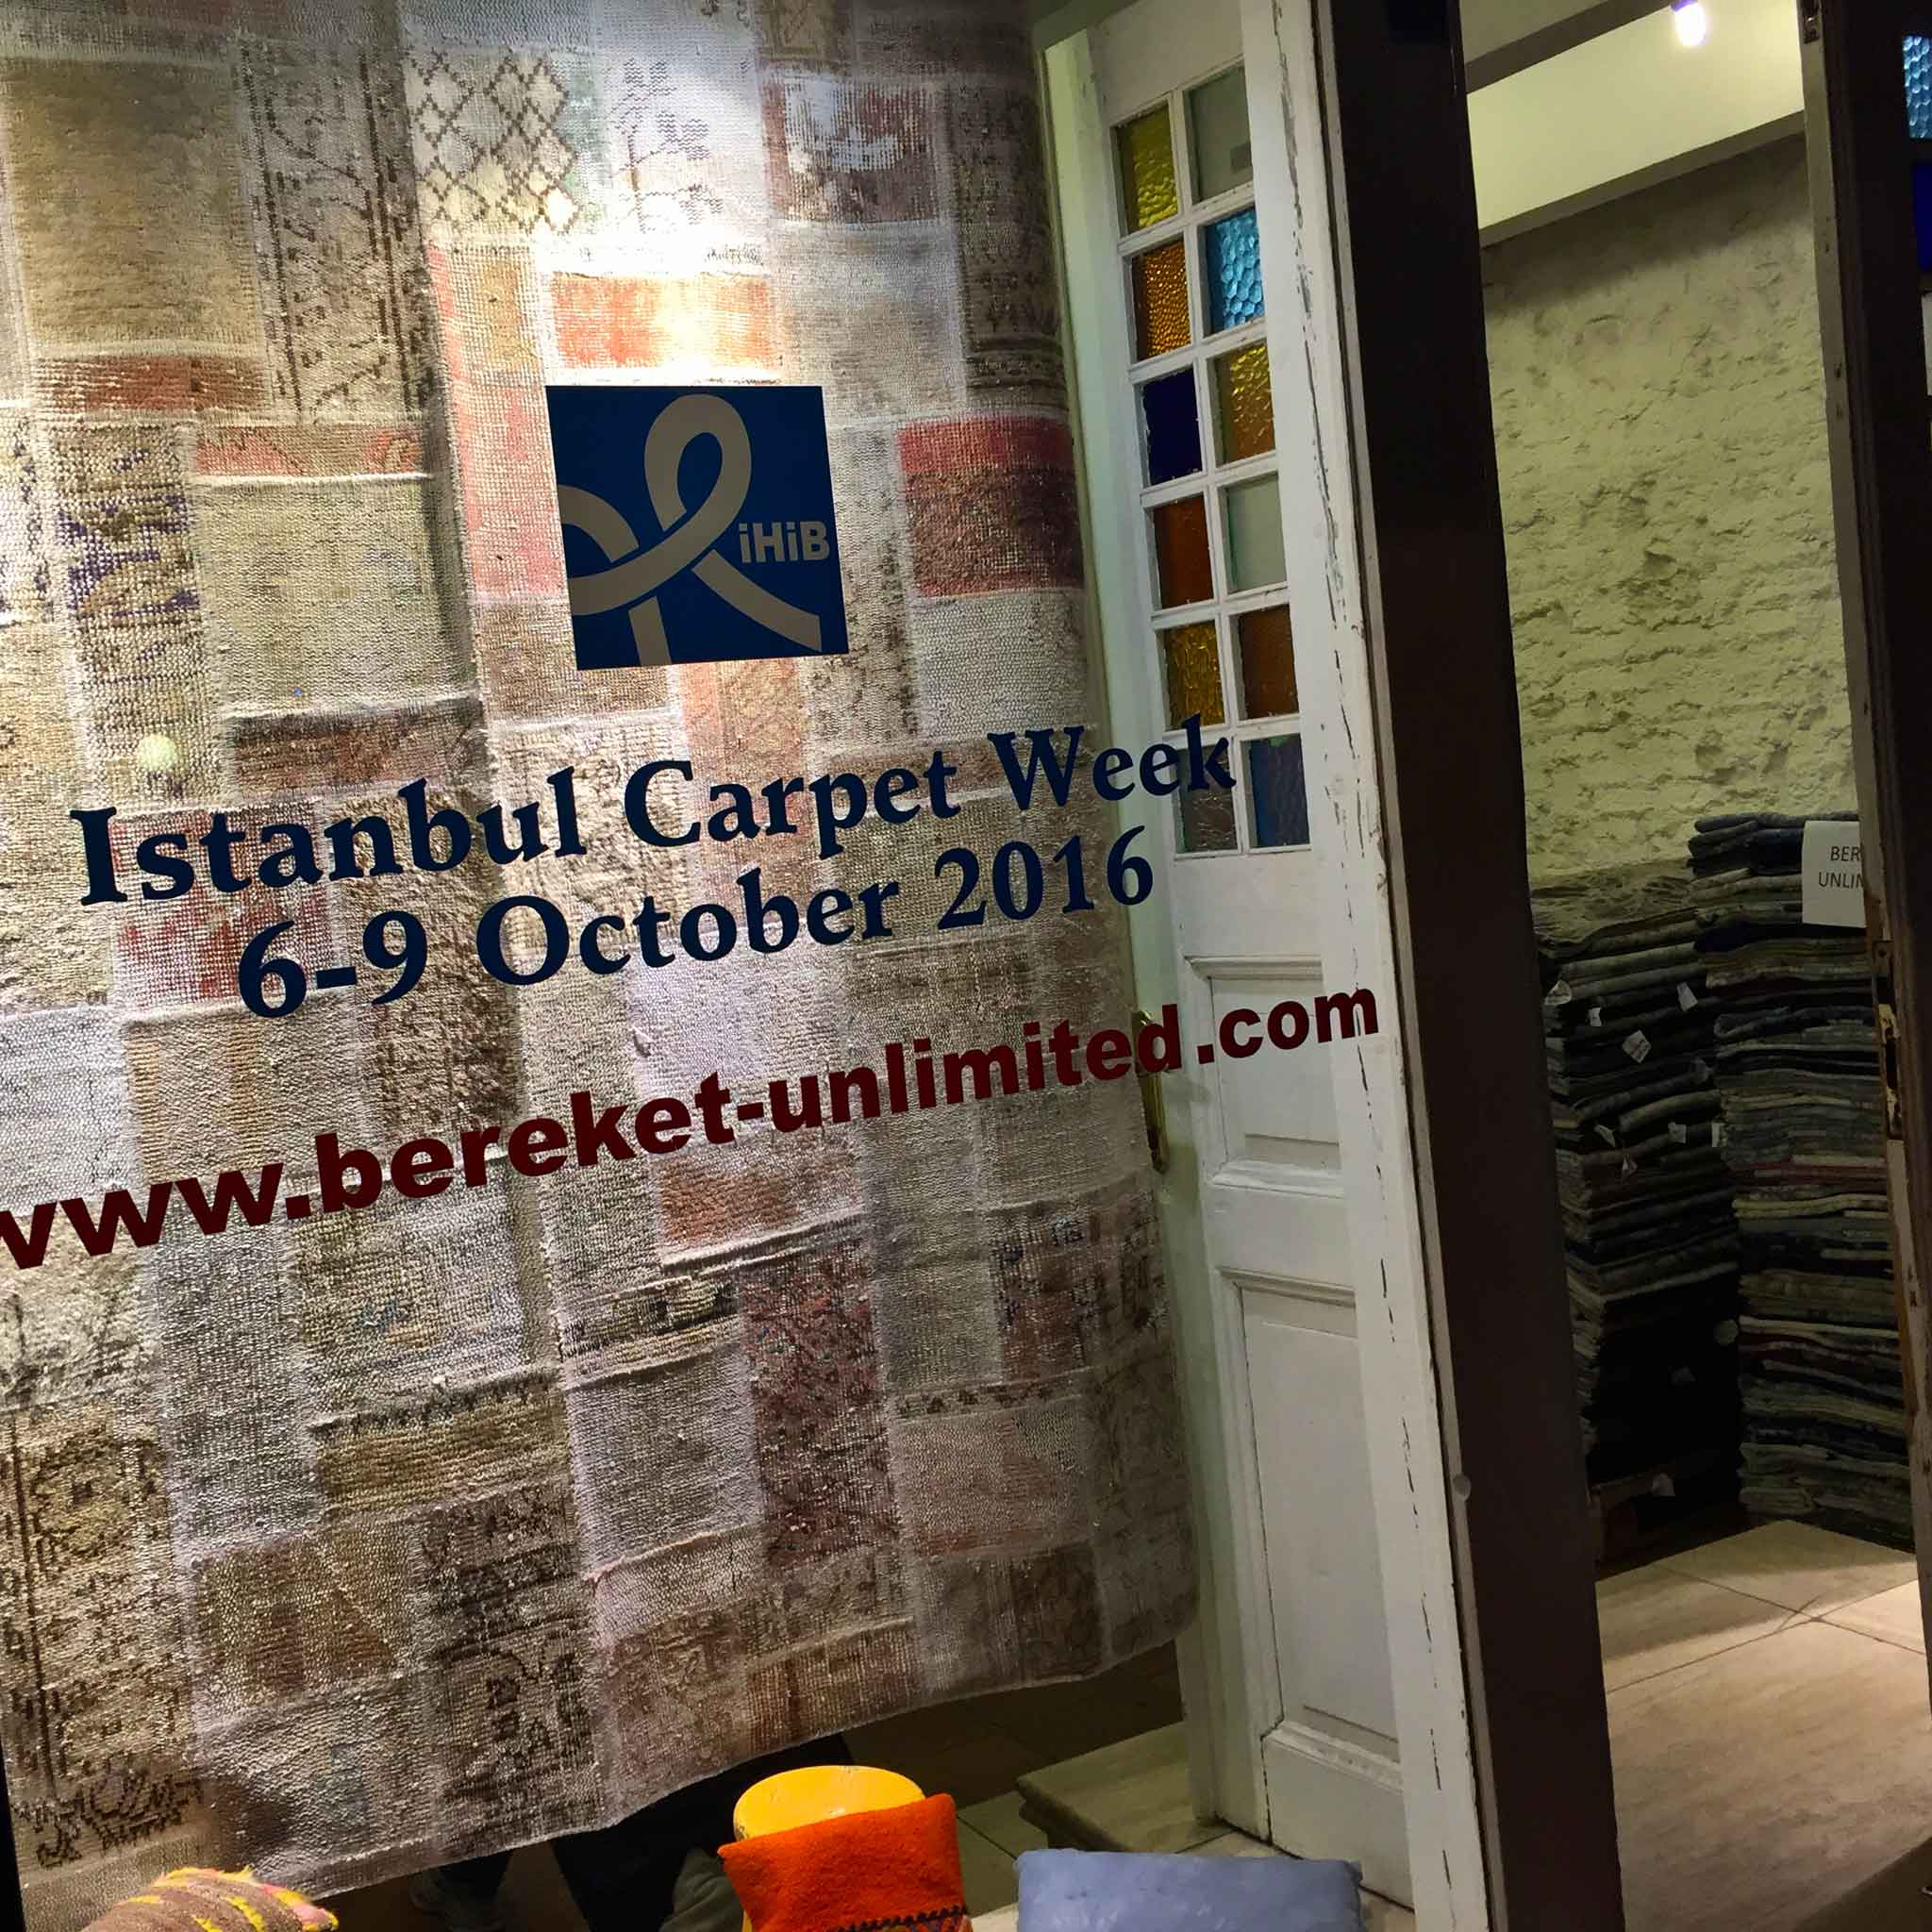 Bereket Unlimited in Sultanahmet, Istanbul, Turkey welcome attendees and delegates during the inagural Istanbul Carpet Week. | Image by The Ruggist.